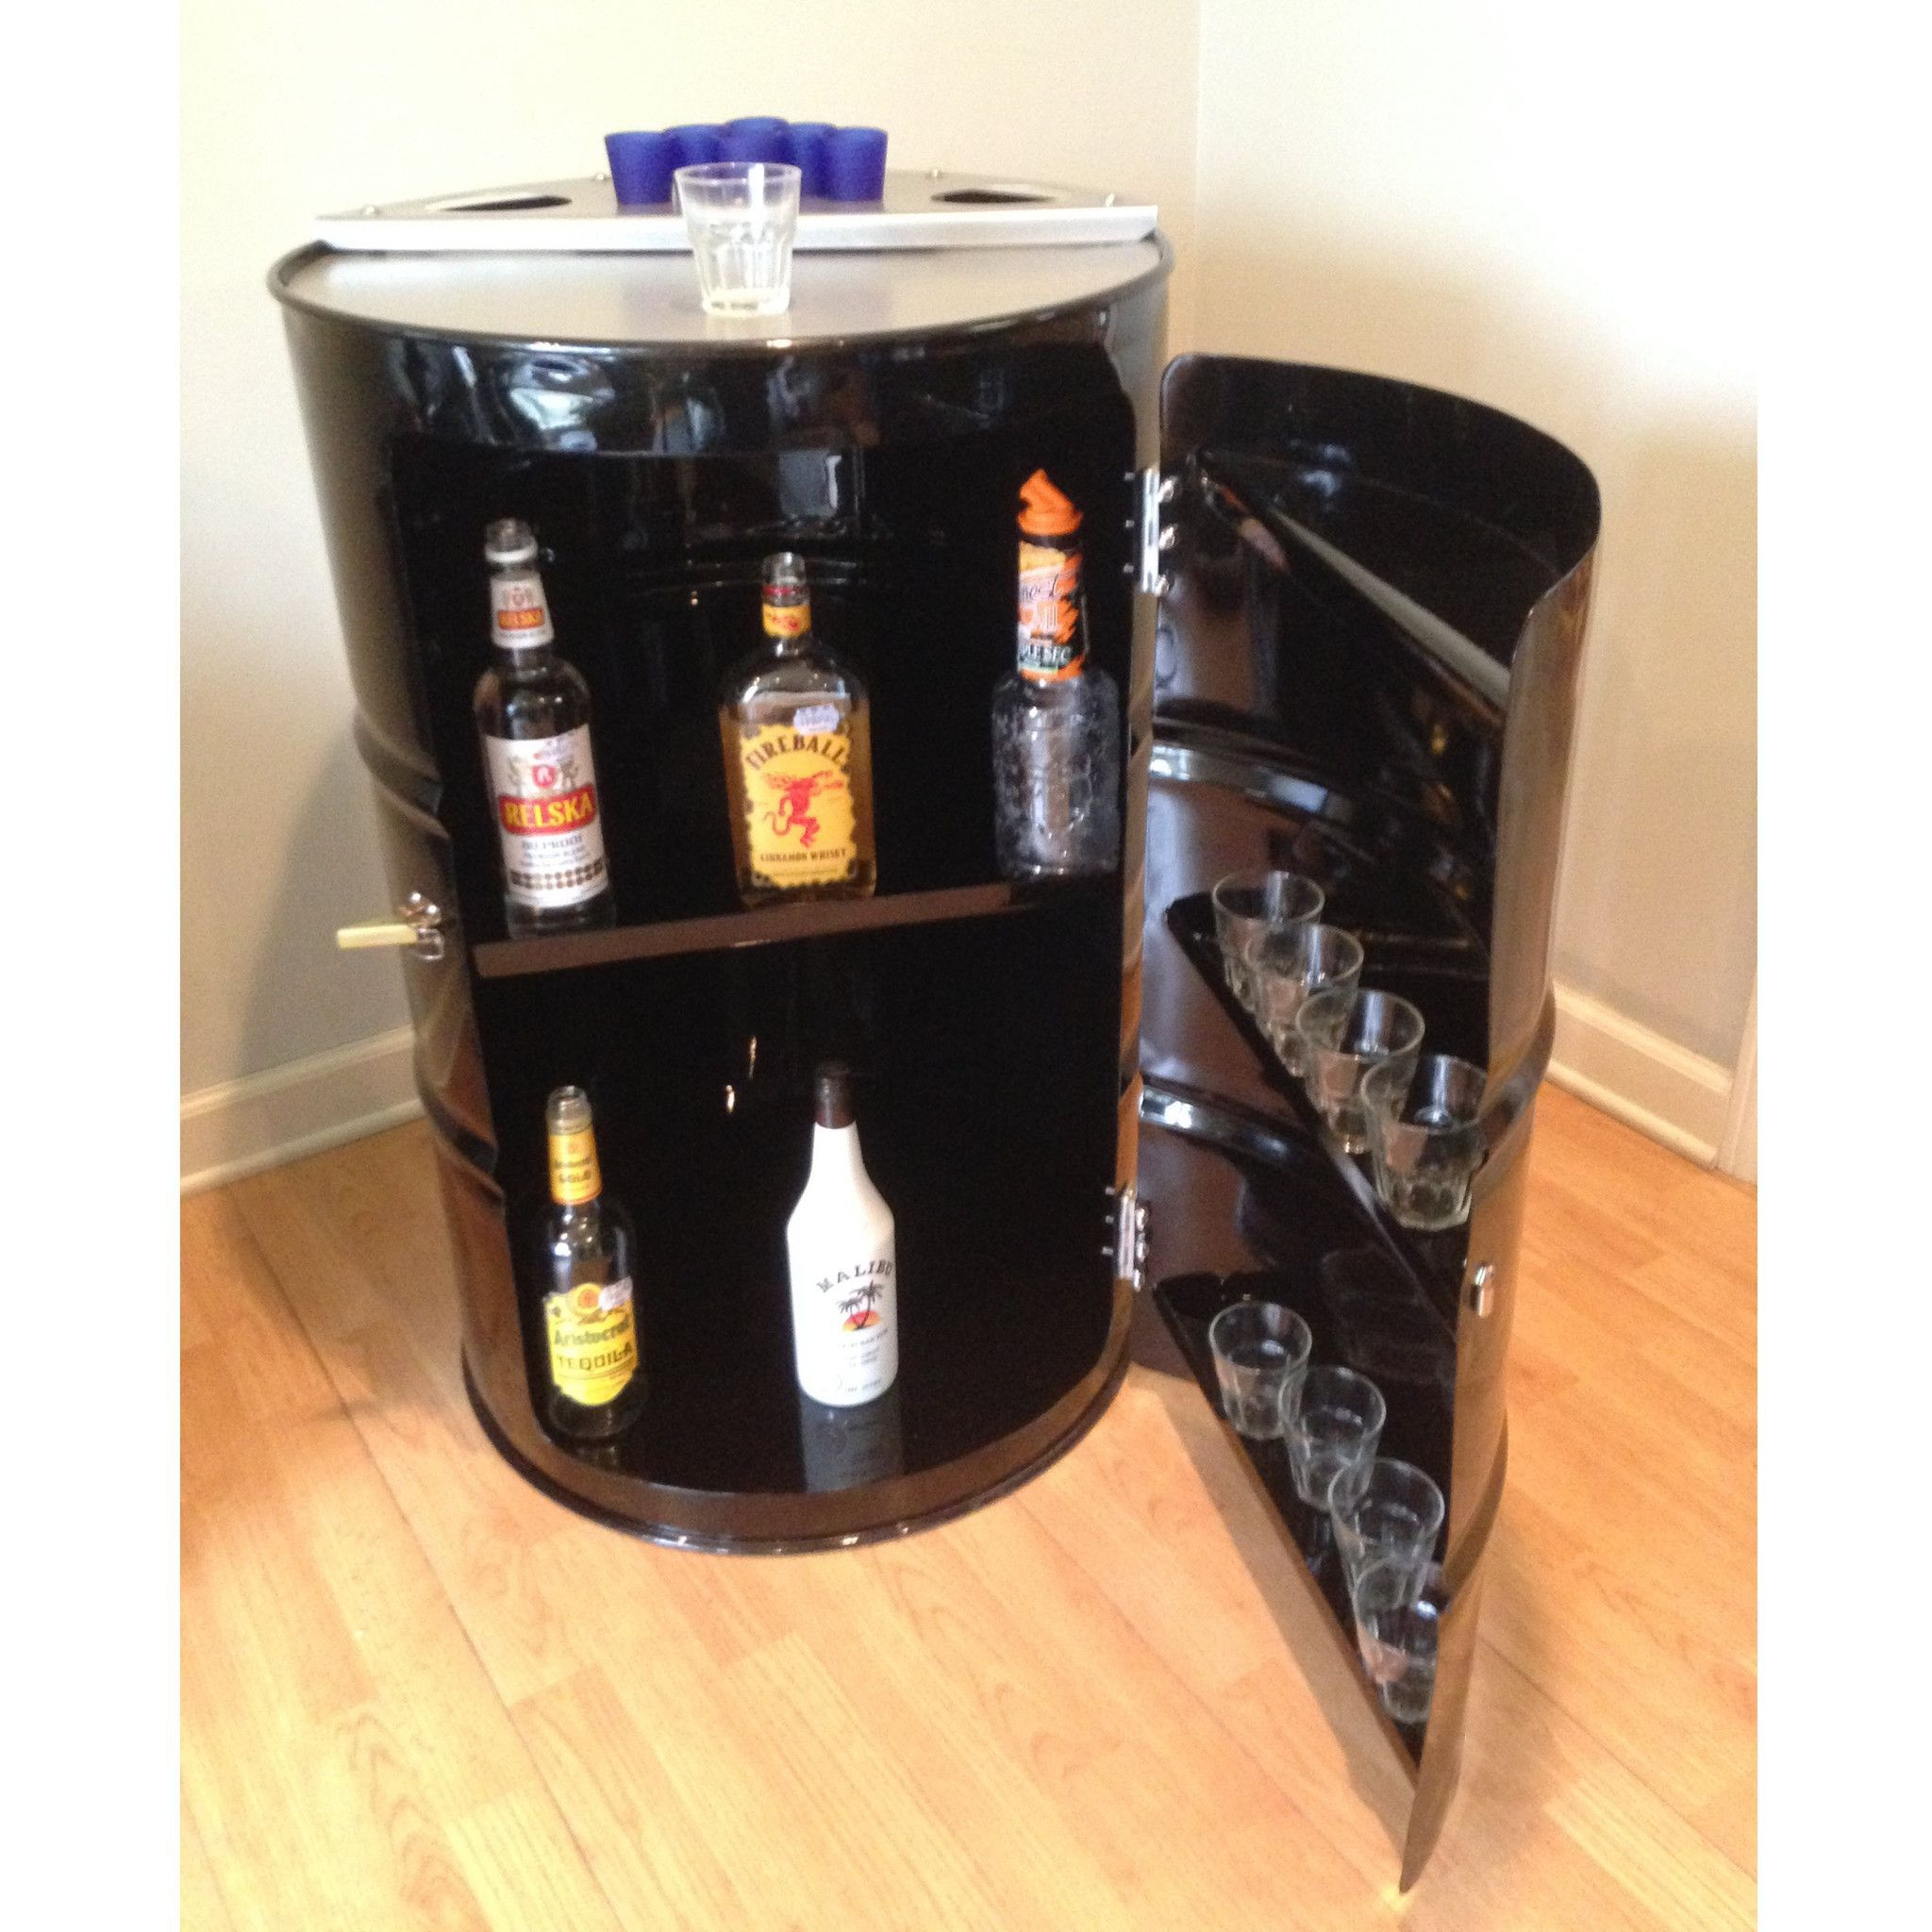 Drum Barrel Furniture The popular Corner Bar is made from a ...